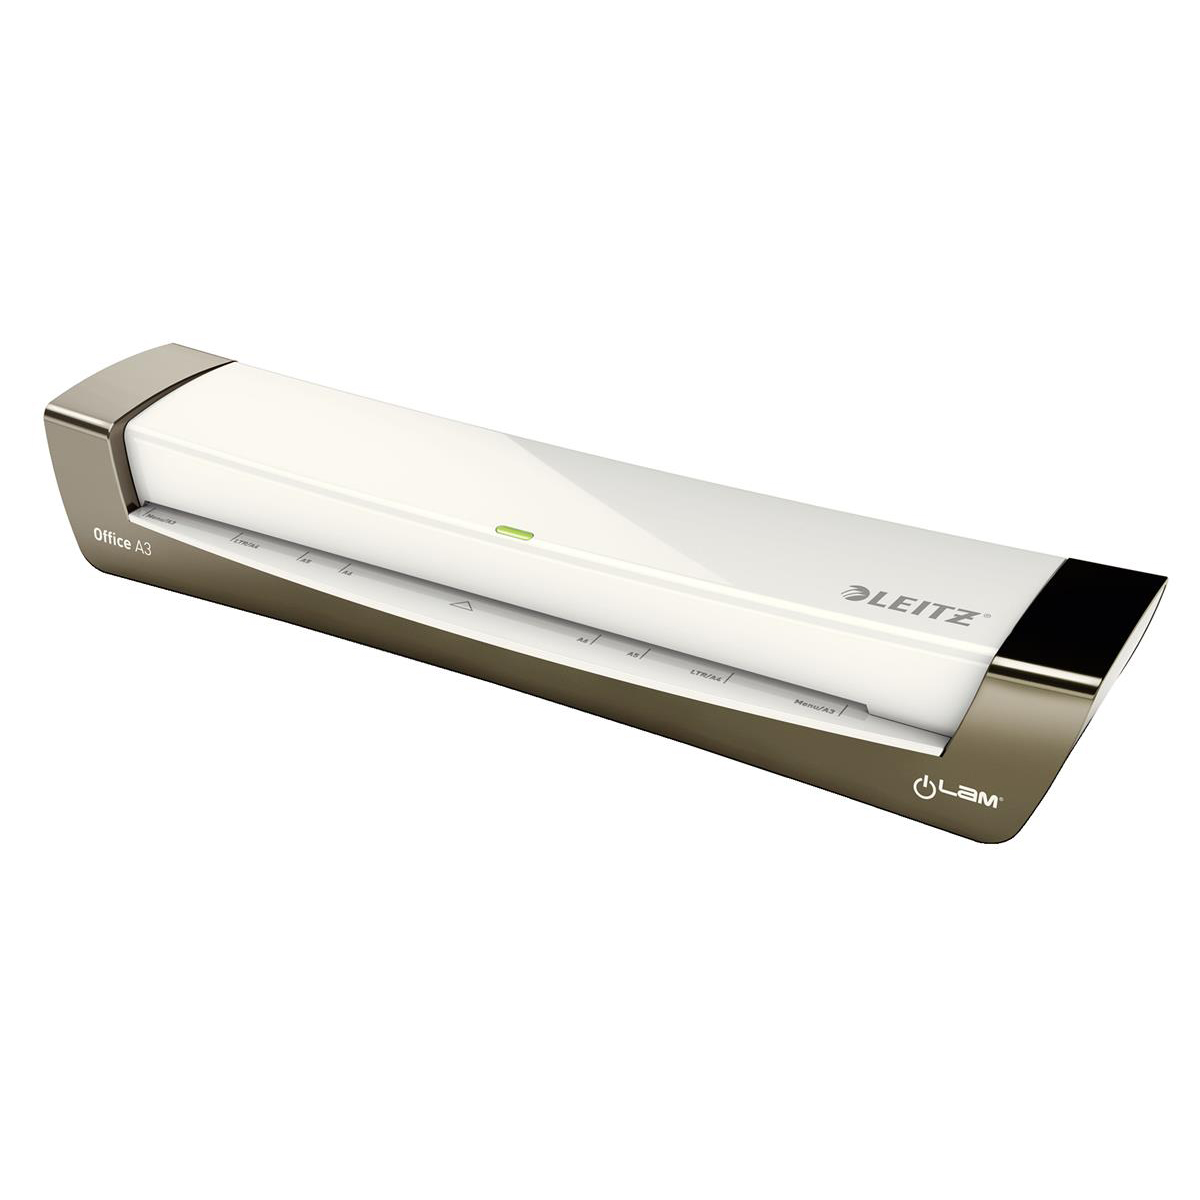 Leitz iLam Office Laminator A3 Silver Ref 72531084 and Pouches Ref 74860000 [Redemption] May-Sep 2018